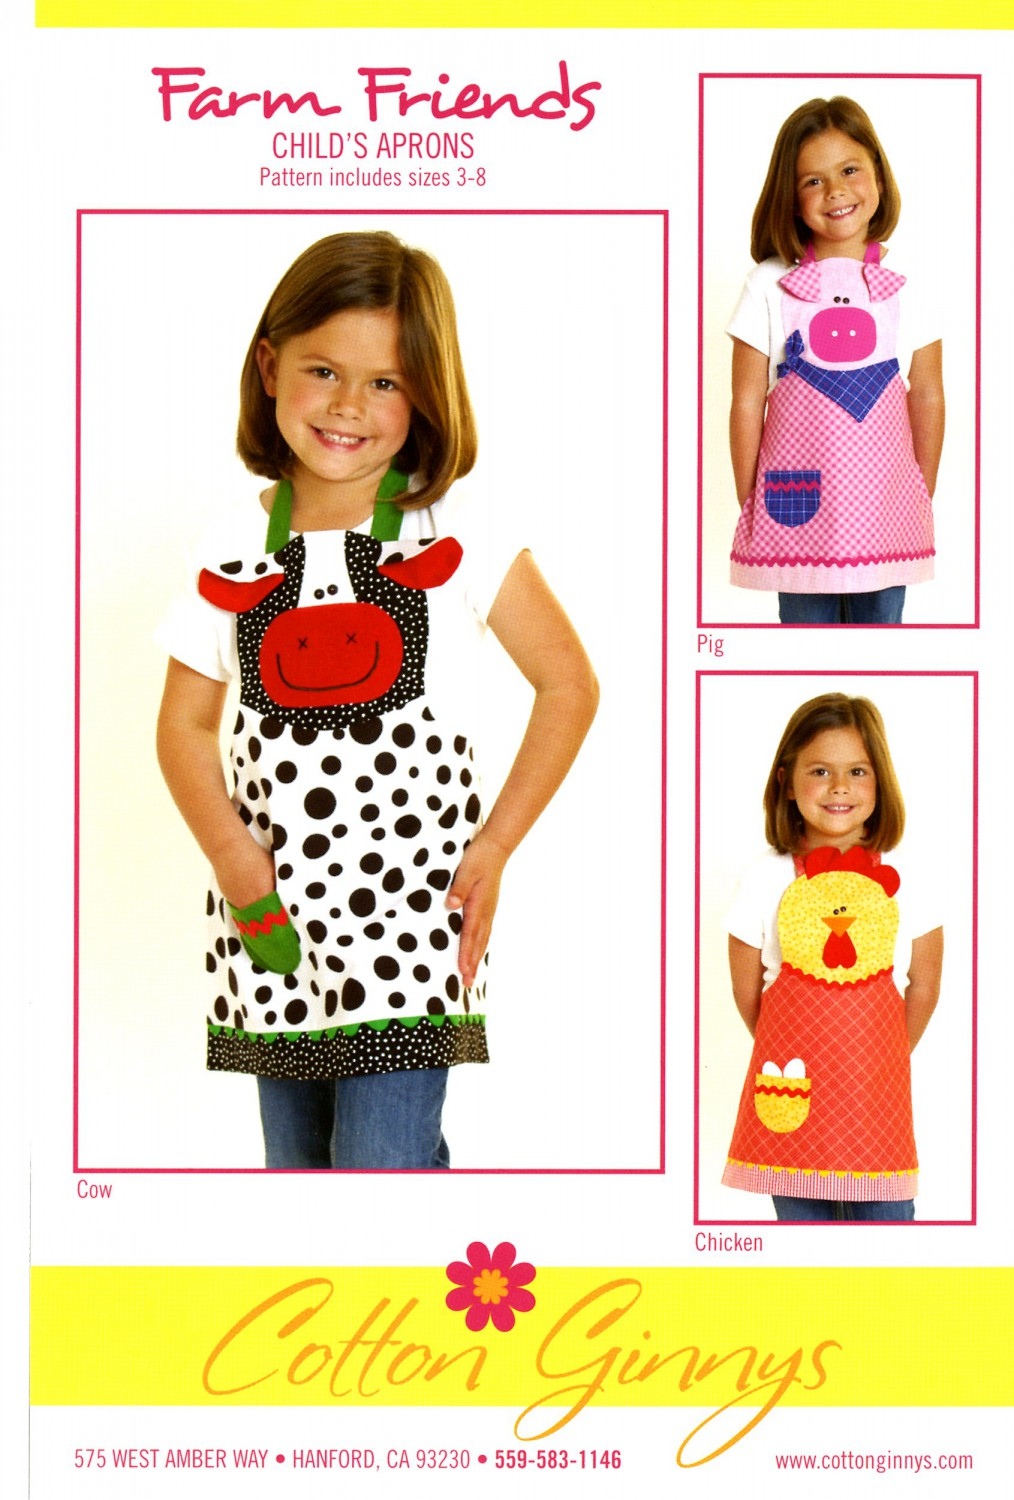 Farm Friends Child's Apron Cow, Pig & Chicken Pattern By Cynthia Rose